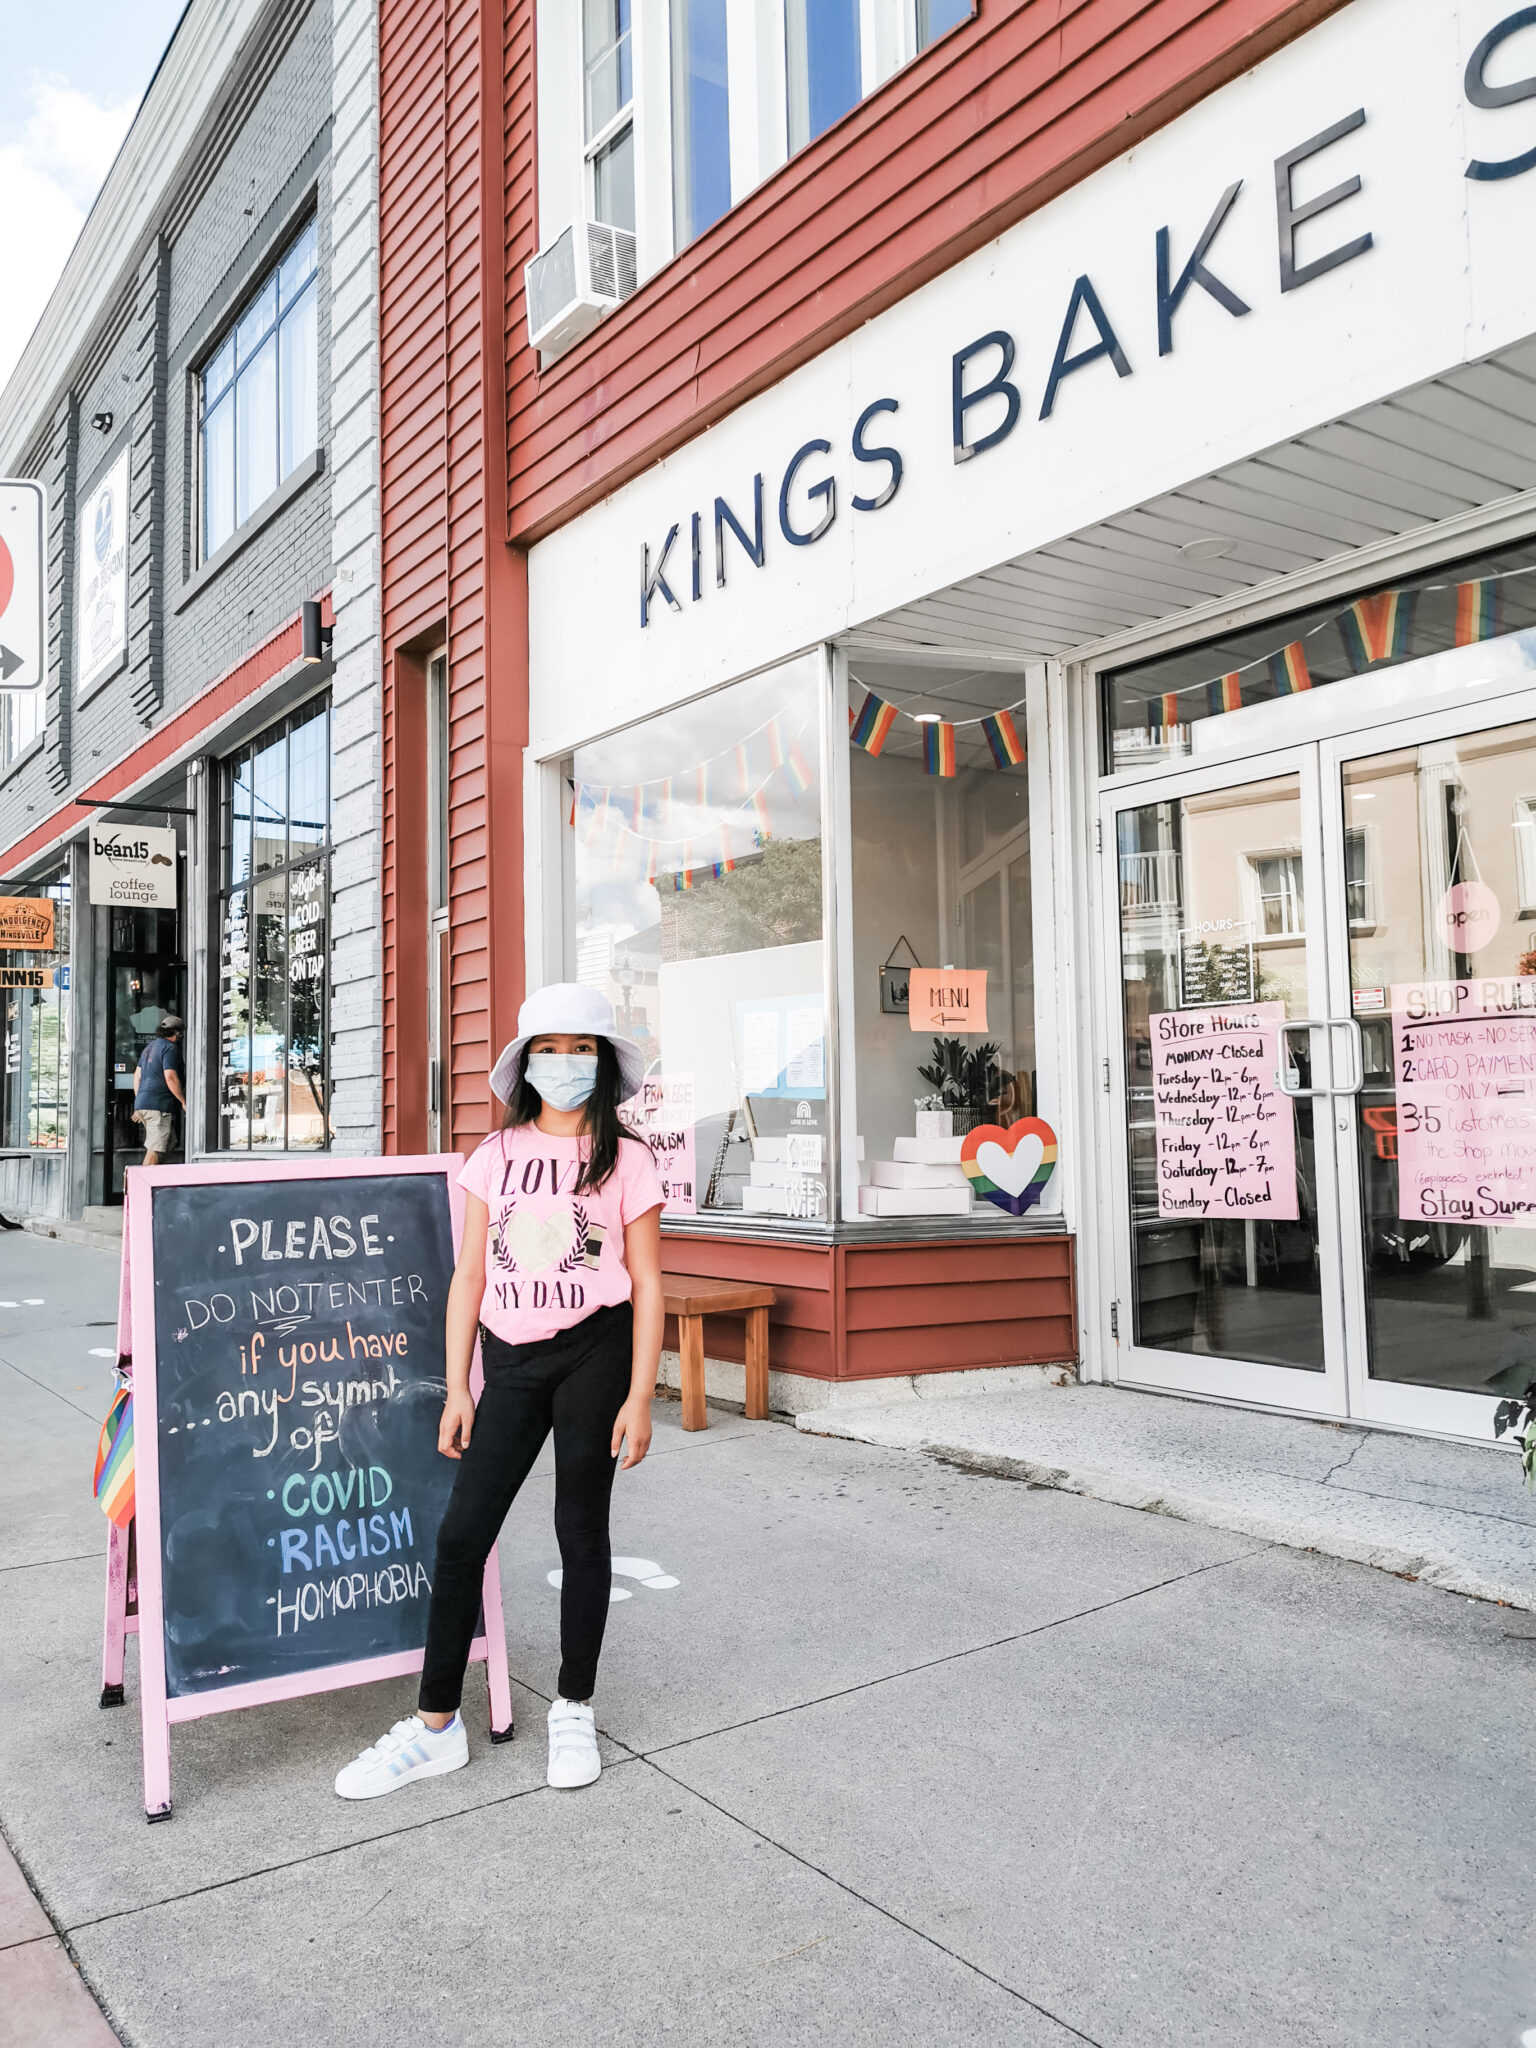 Mimi wearing a mask in front of King's Bakery.